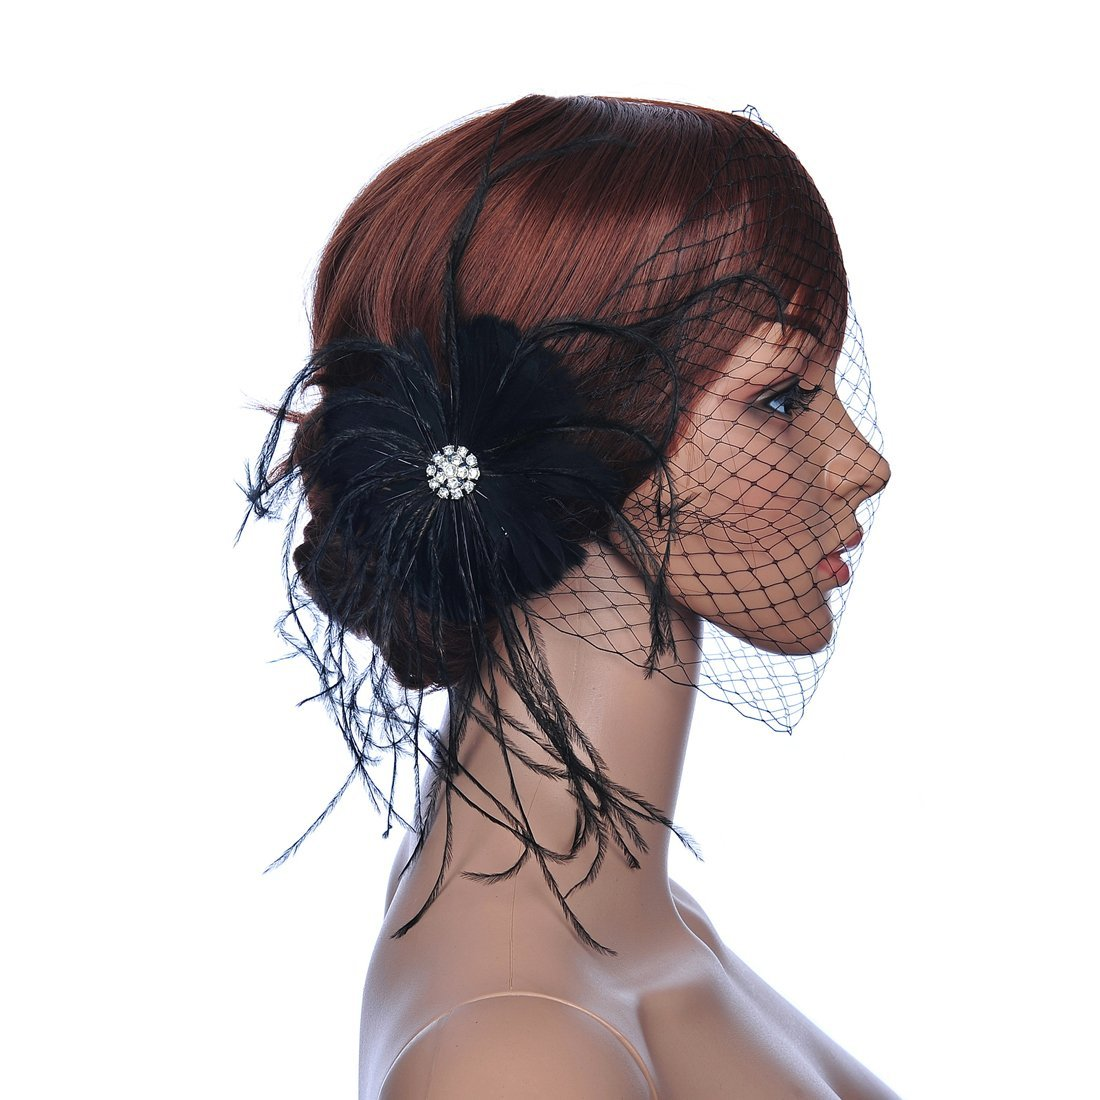 Remedios Black Feather Party Hair Veil Accessory Bridal Headpiece LWCAFS130119